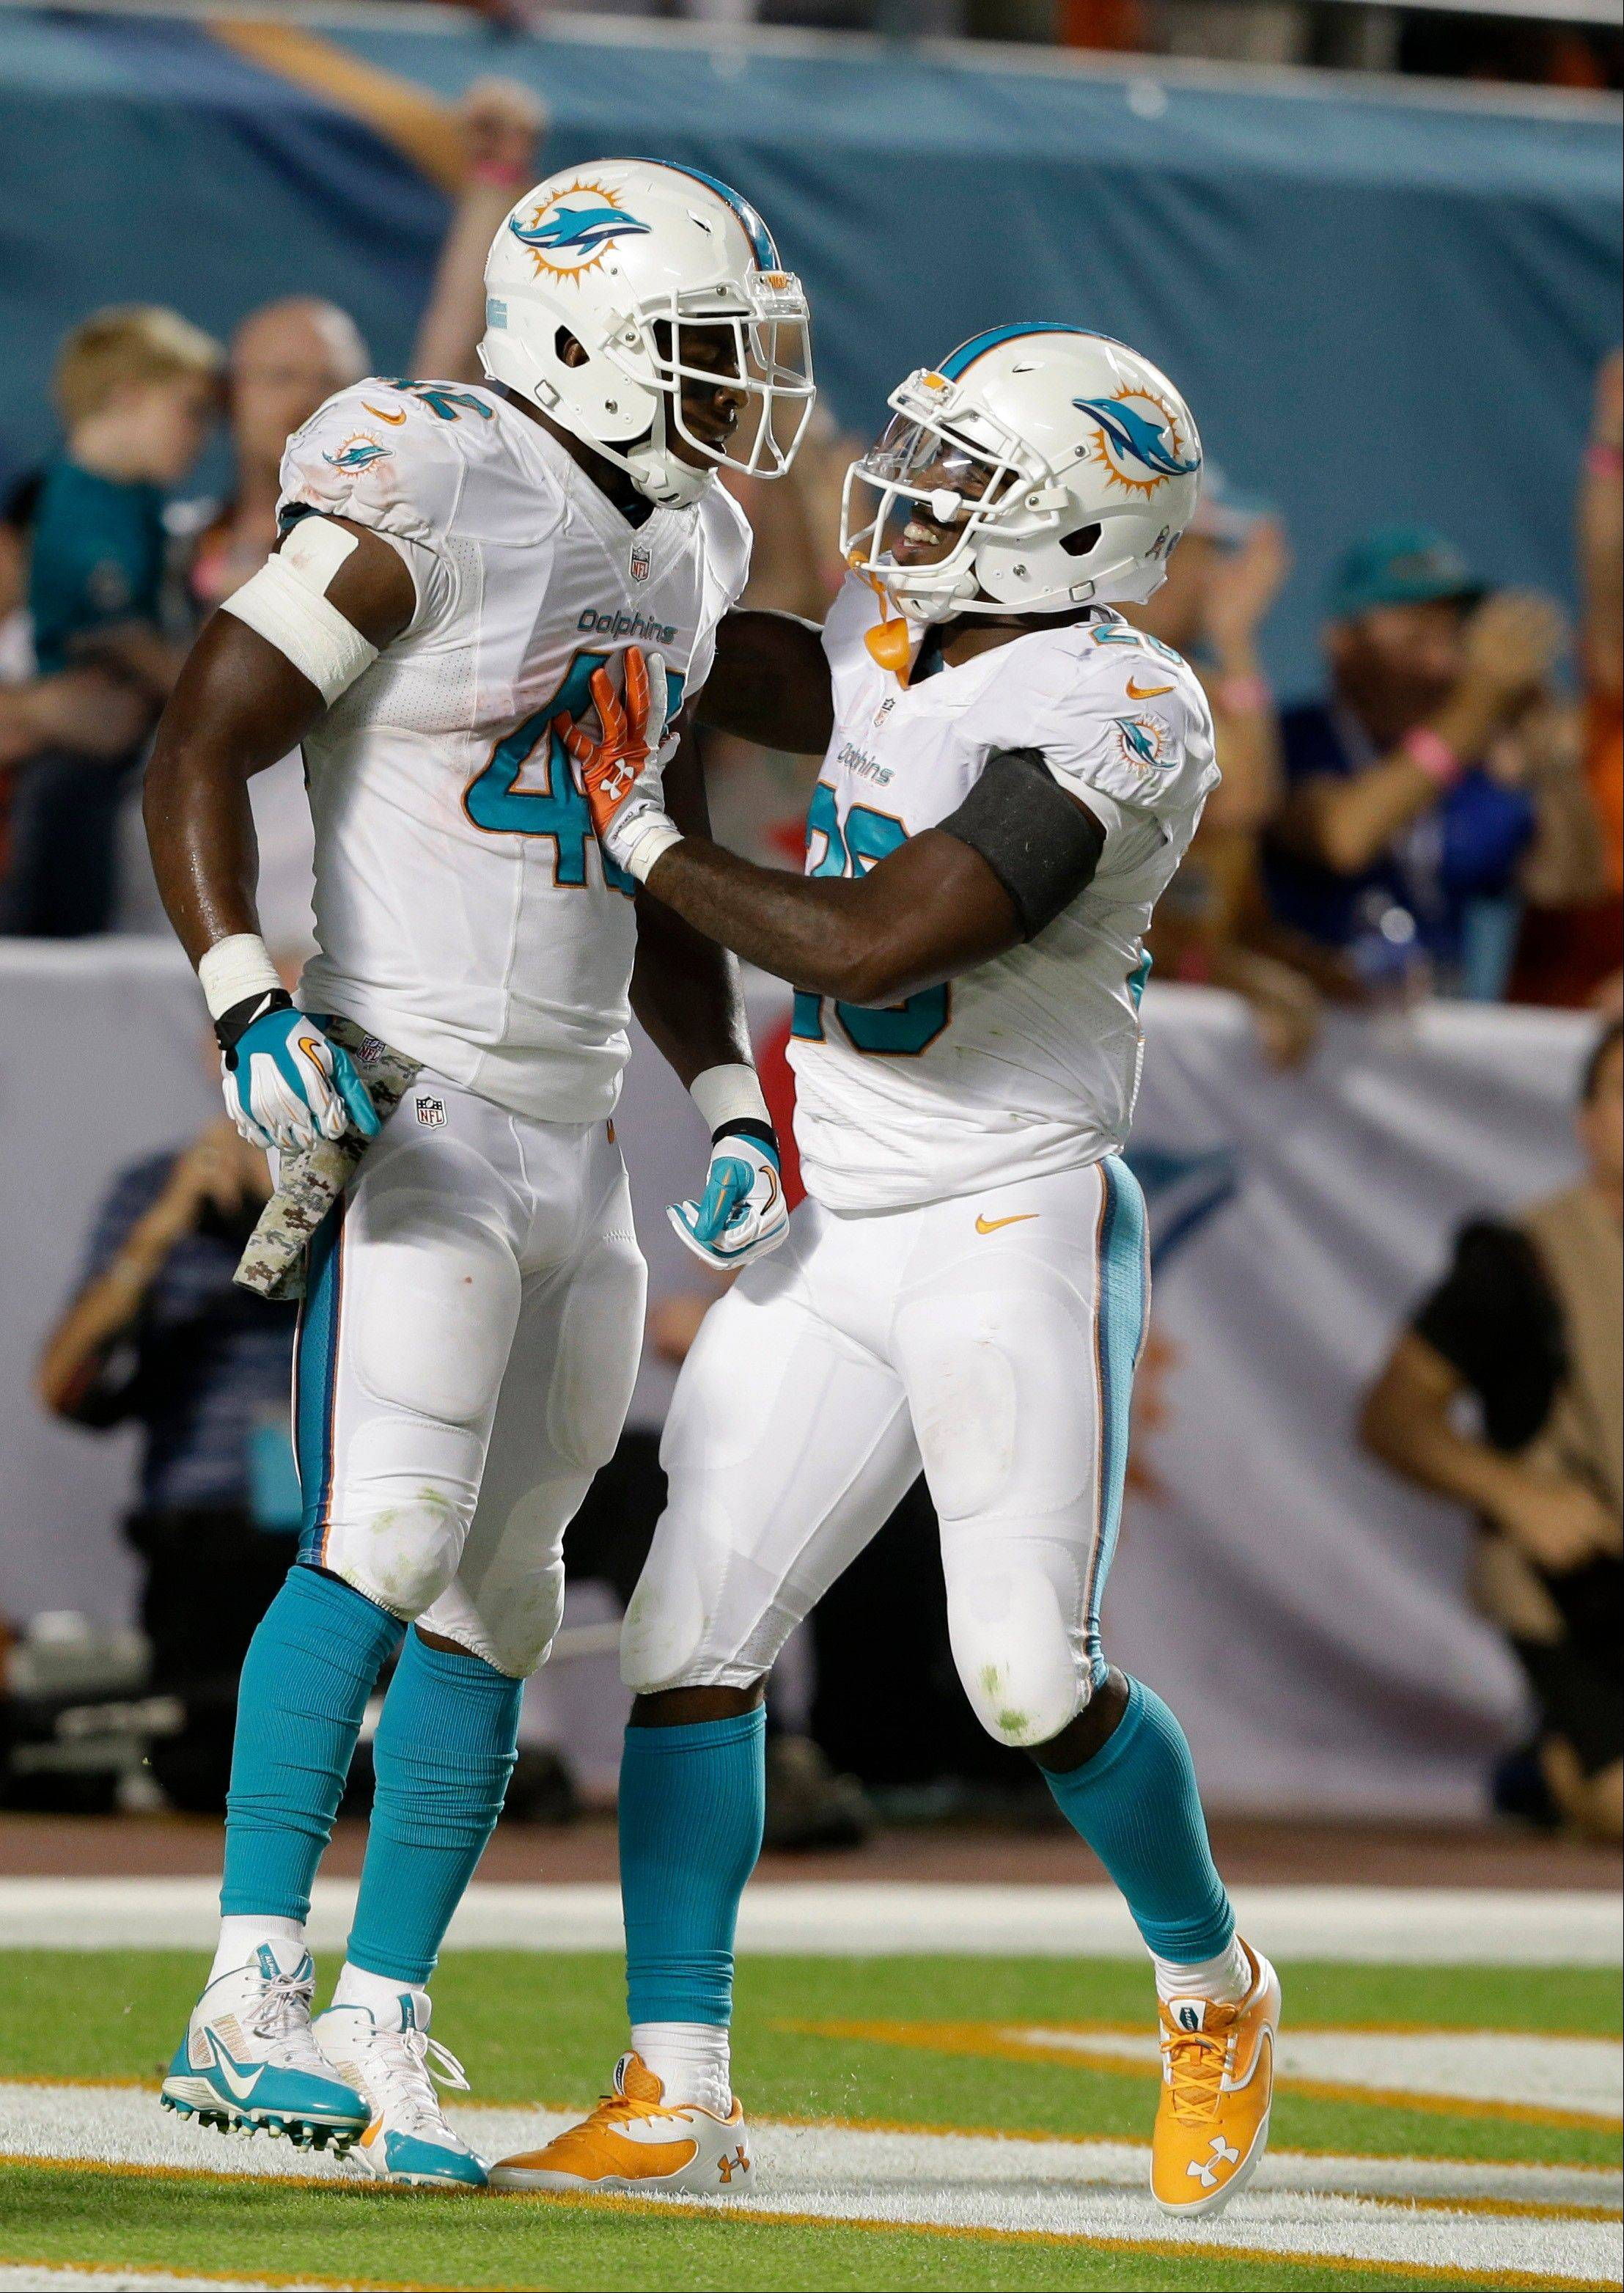 Miami Dolphins tight end Charles Clay (42) is congratulated by running back Lamar Miller (26) after Clay ran 39 yards for a touchdown during the second half of an NFL football game against the San Diego Chargers, Sunday, Nov. 17, 2013, in Miami Gardens, Fla.